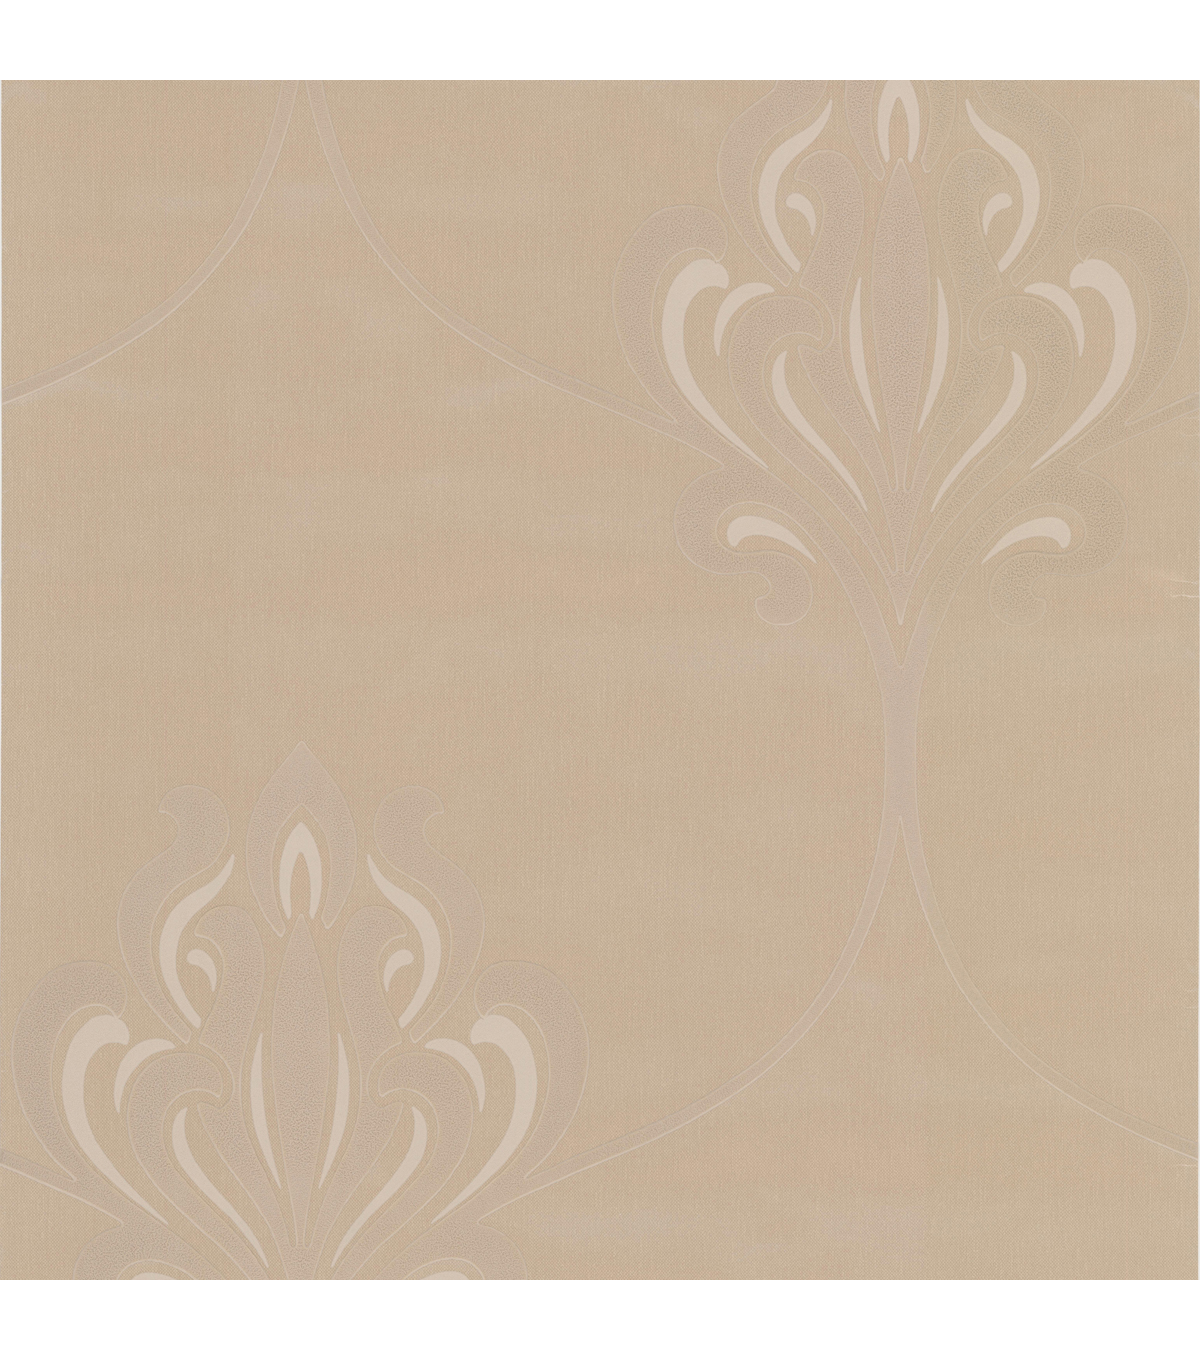 Orfeo Taupe Nouveau Damask Wallpaper